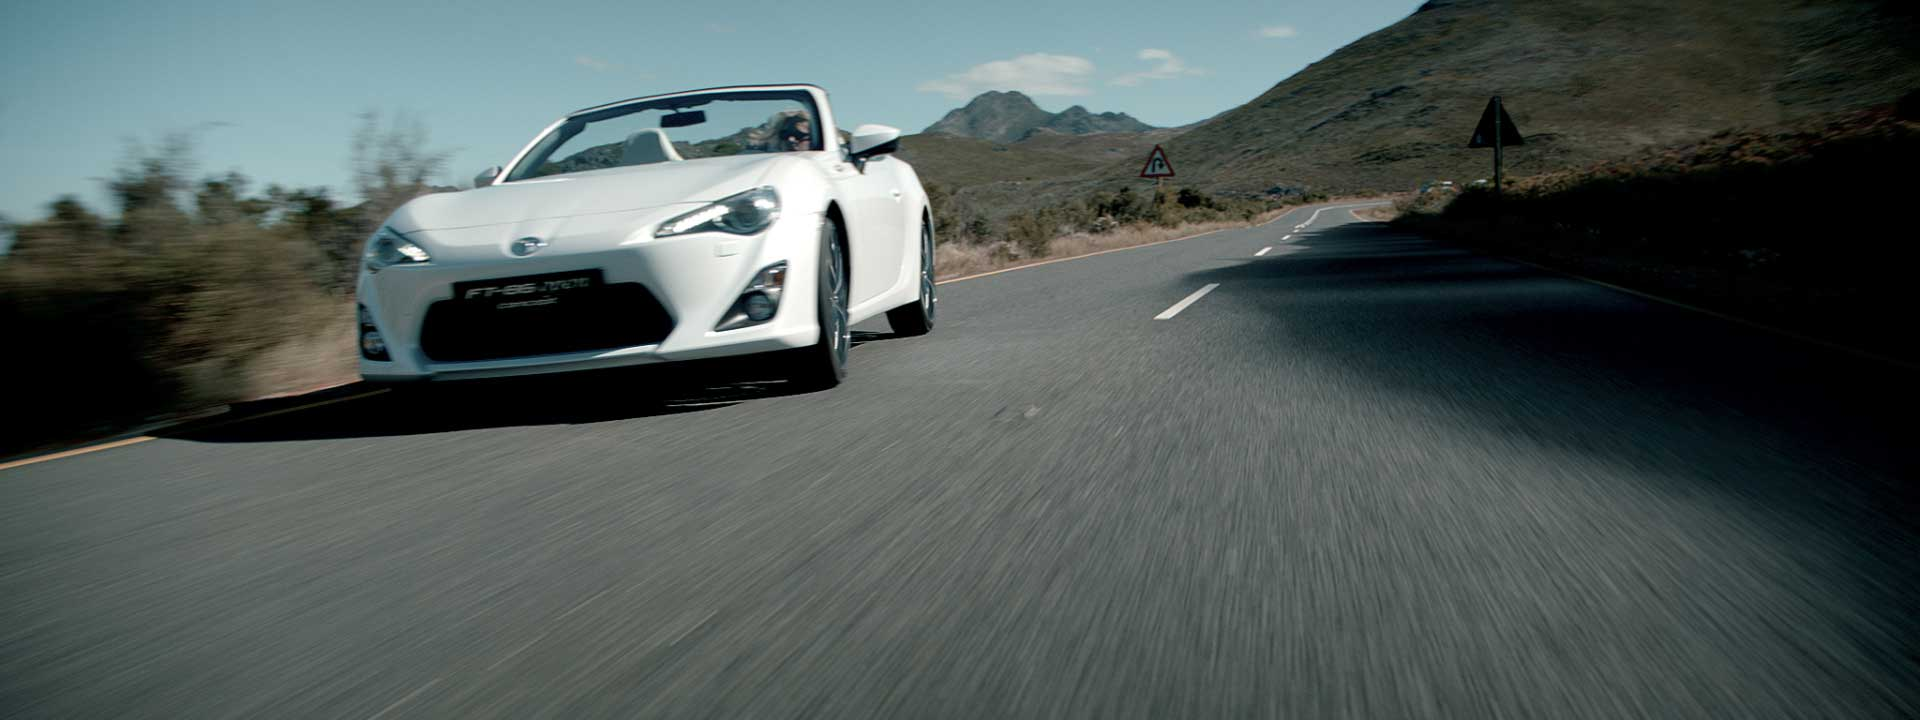 Driving car. Still from Toyota FT-86 open – Commercial